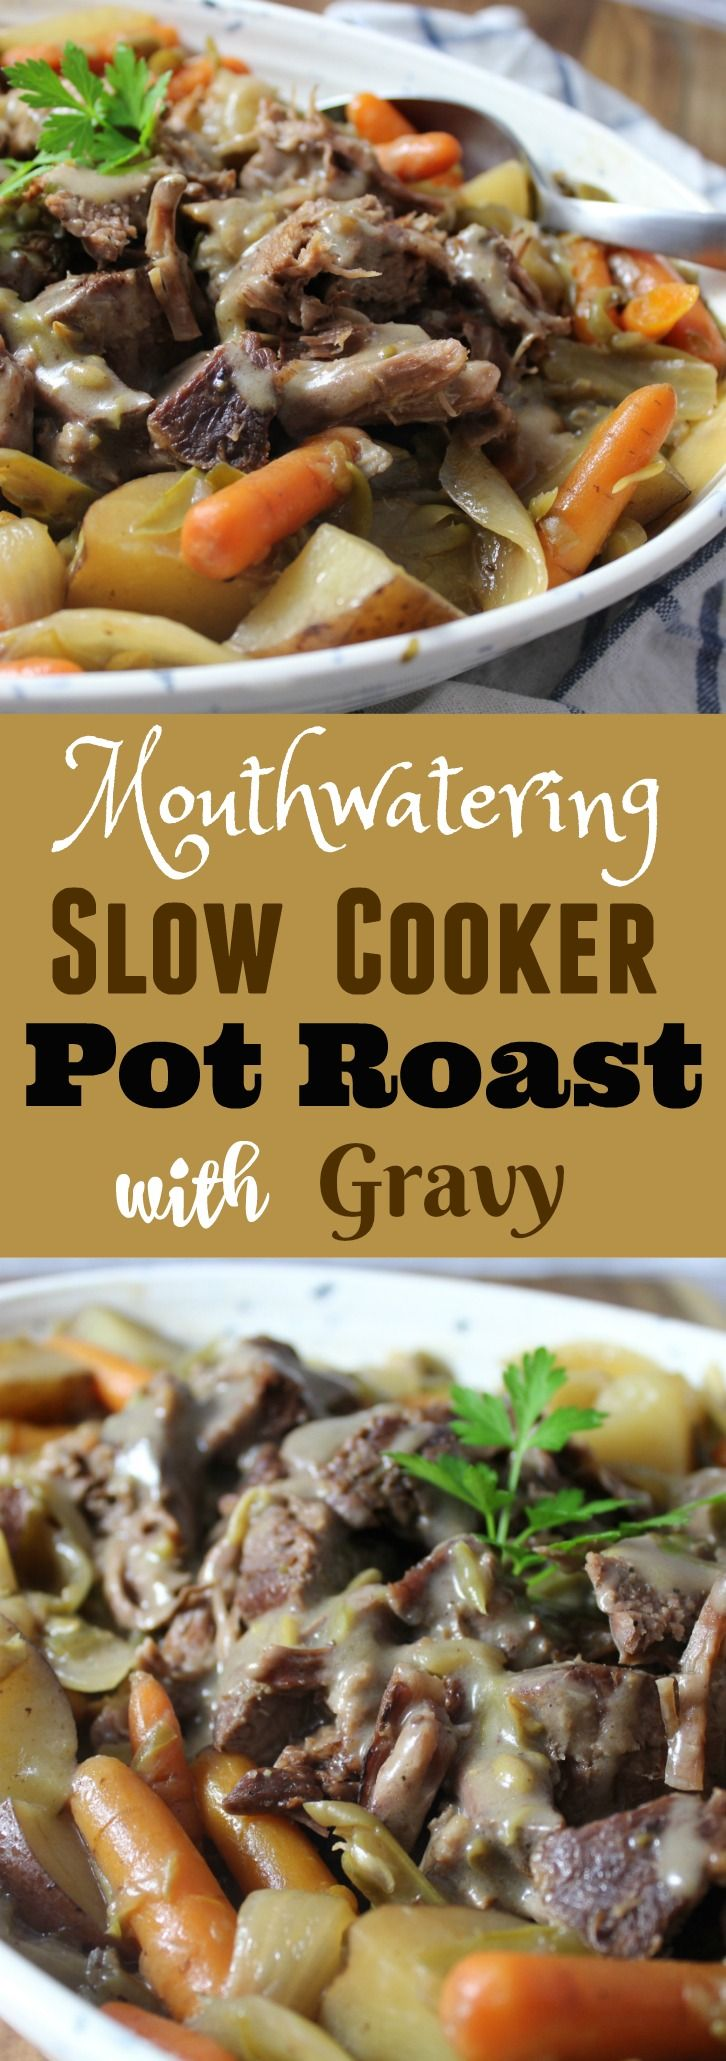 Mouthwatering Slow Cooker Pot Roast with carrots, onions, red potatoes, green beans and gravy. This tender, and juicy, fall apart meat it is the best roast I've ever eaten! It is bursting with flavor and makes for the perfect and easiest weeknight dinner.